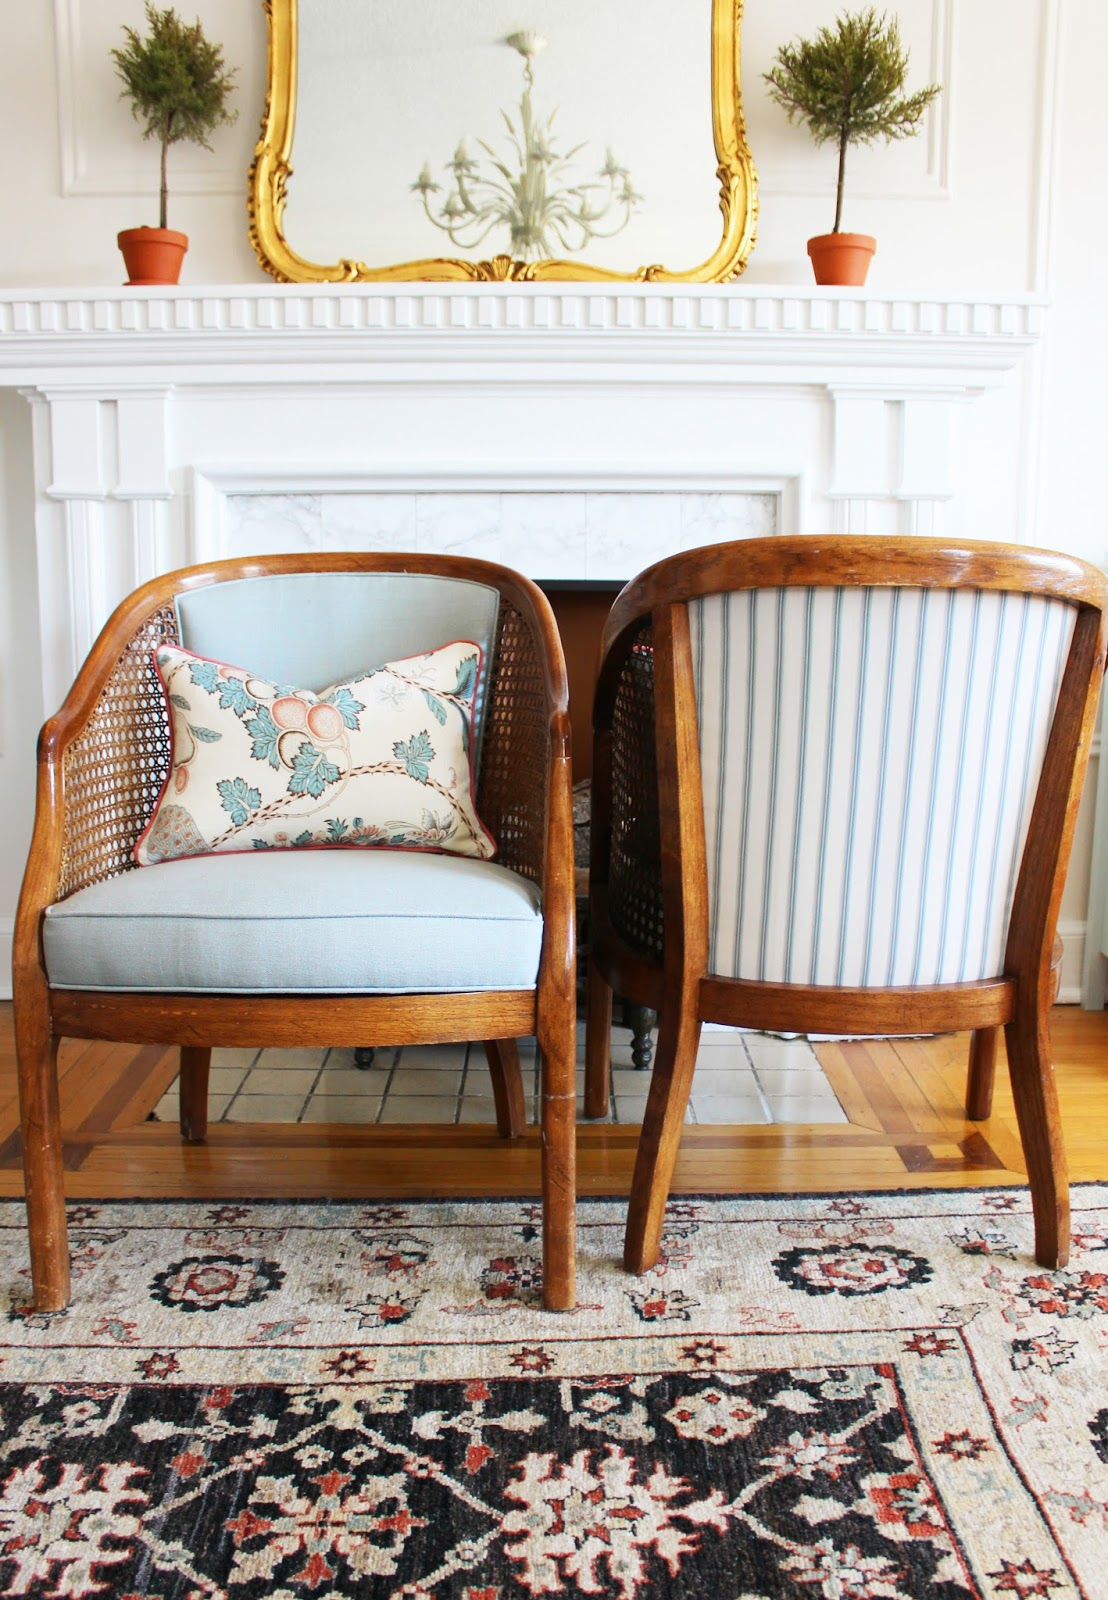 Repairing Cane Seat Chairs Desk Chair Tiffany Leigh Interior Design Makeover